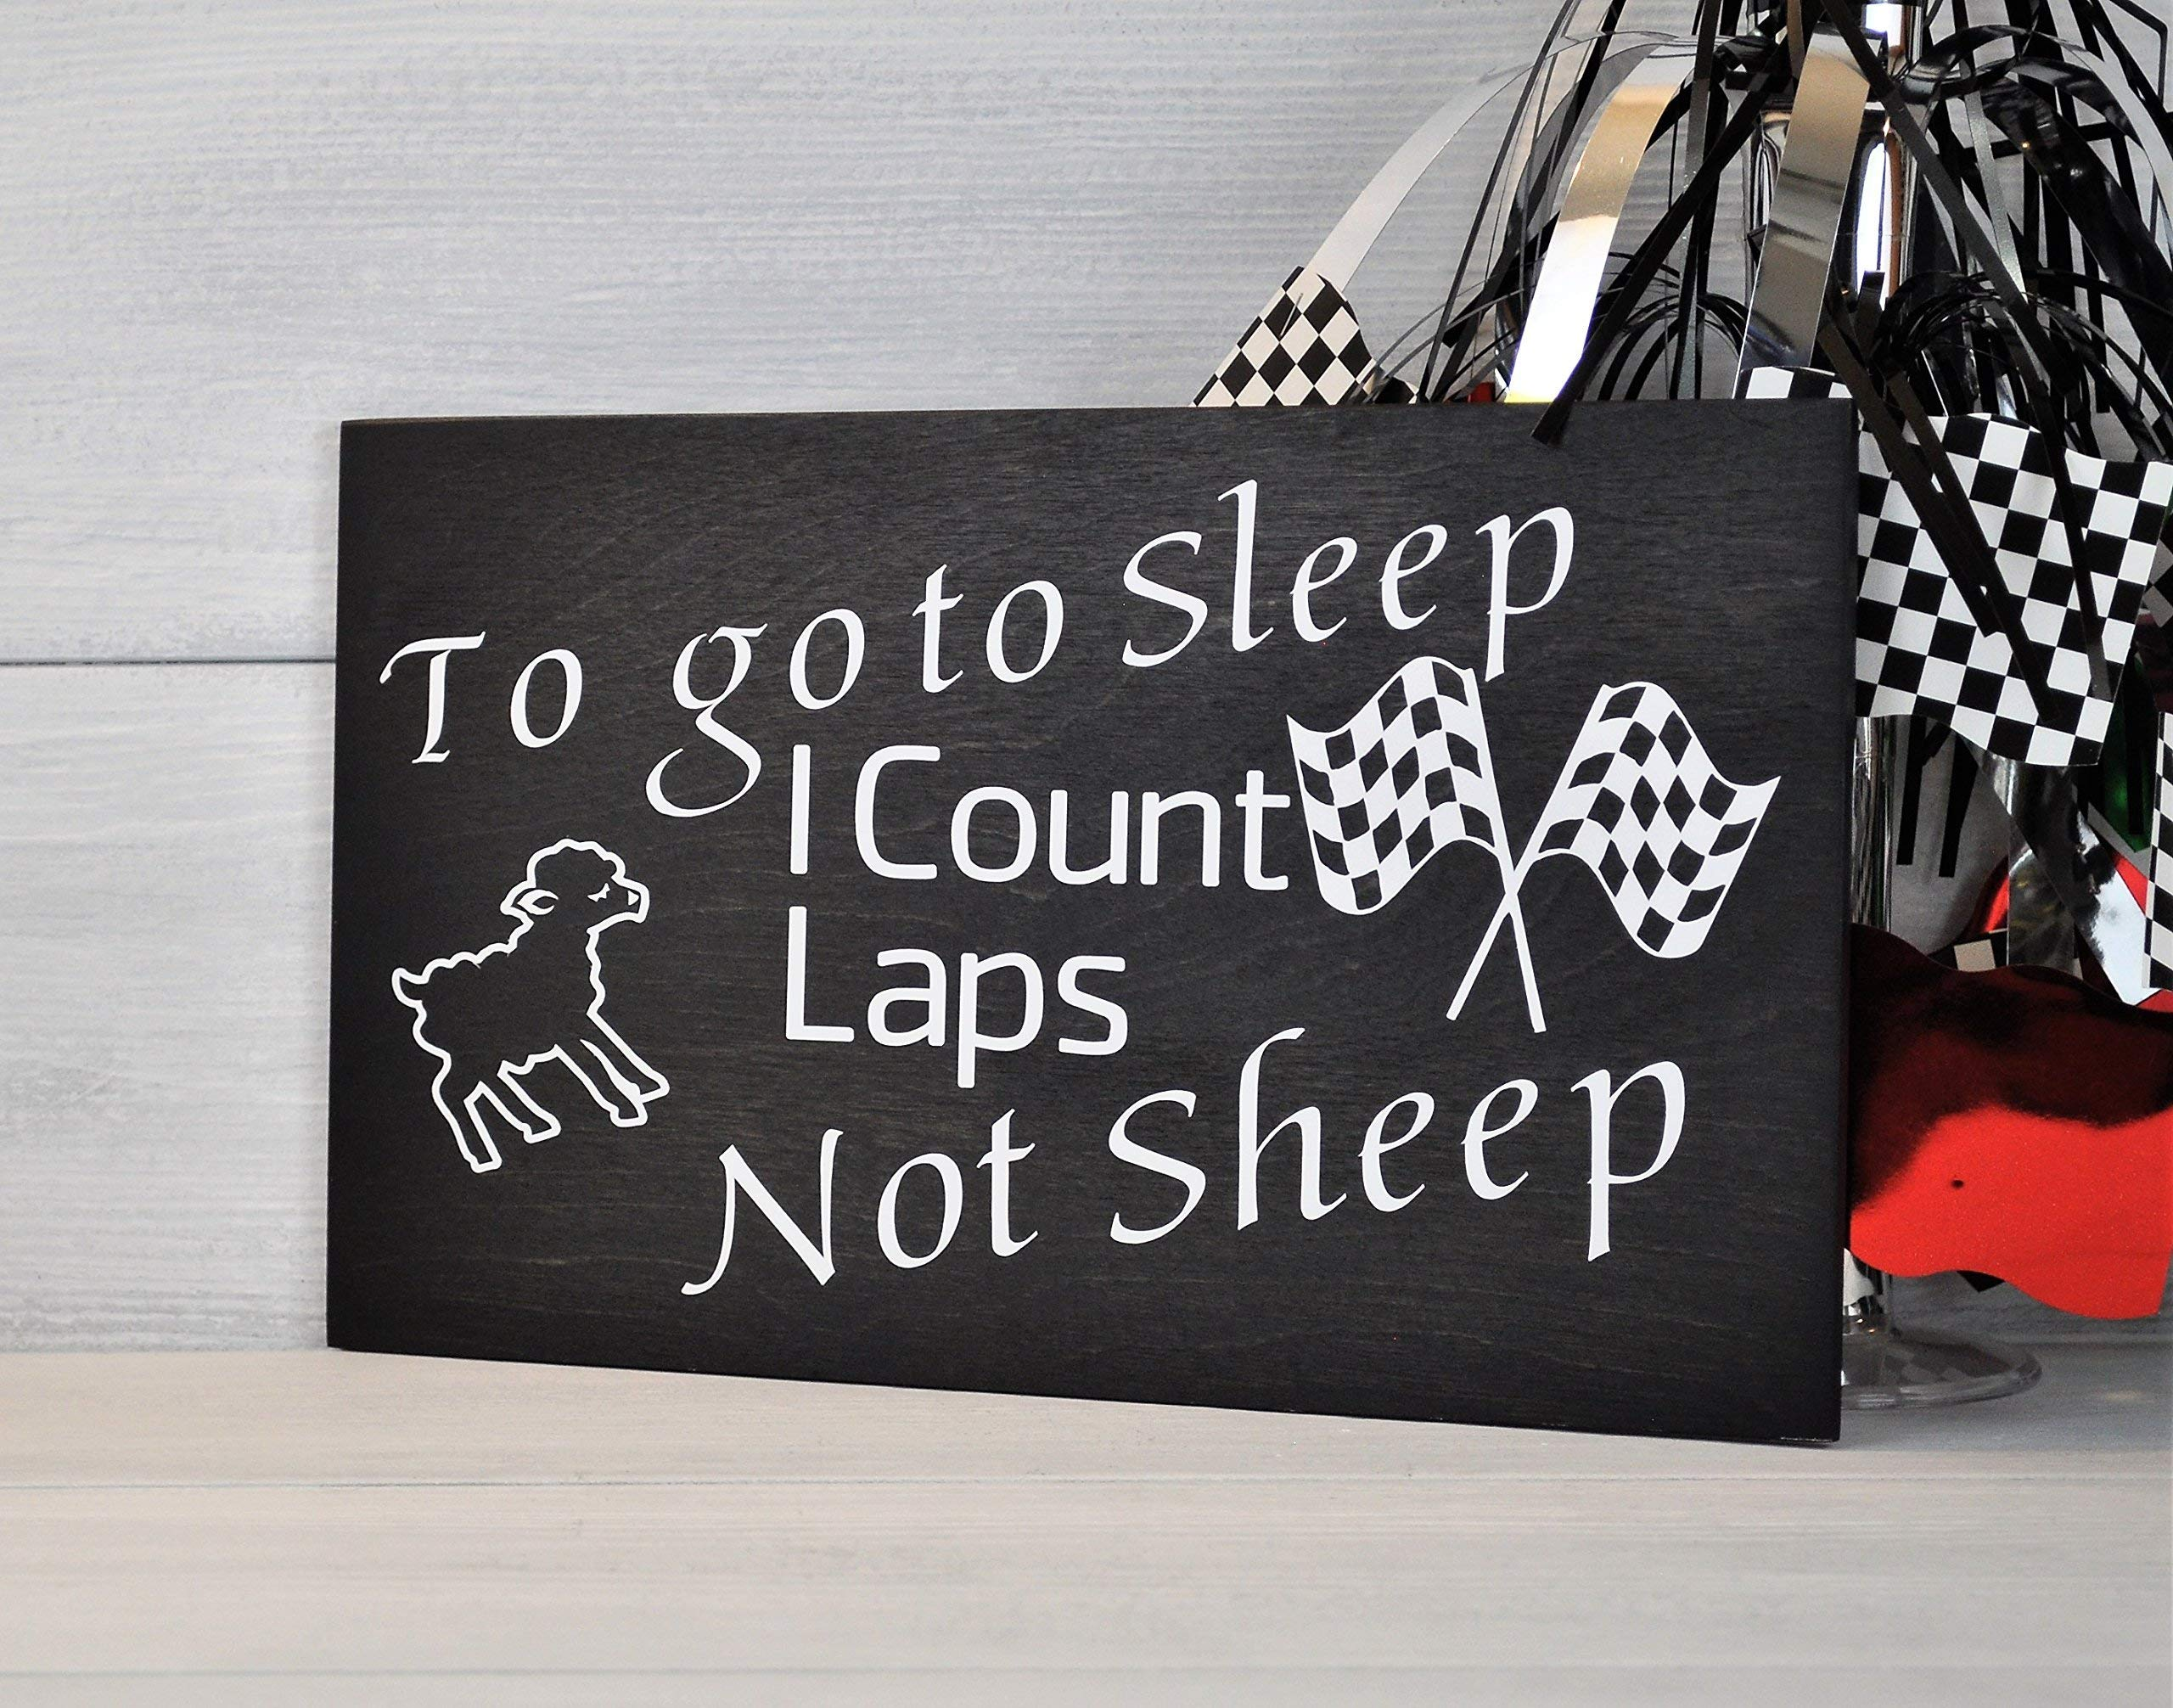 Nursery Decor, I Count Laps Not Sheep, Racing Decor, Childs Room Decor, Mothers Day Gift, Baby Shower Gift, Racing Nursery, Race Track, Nascar Gift by checkeredflagswag